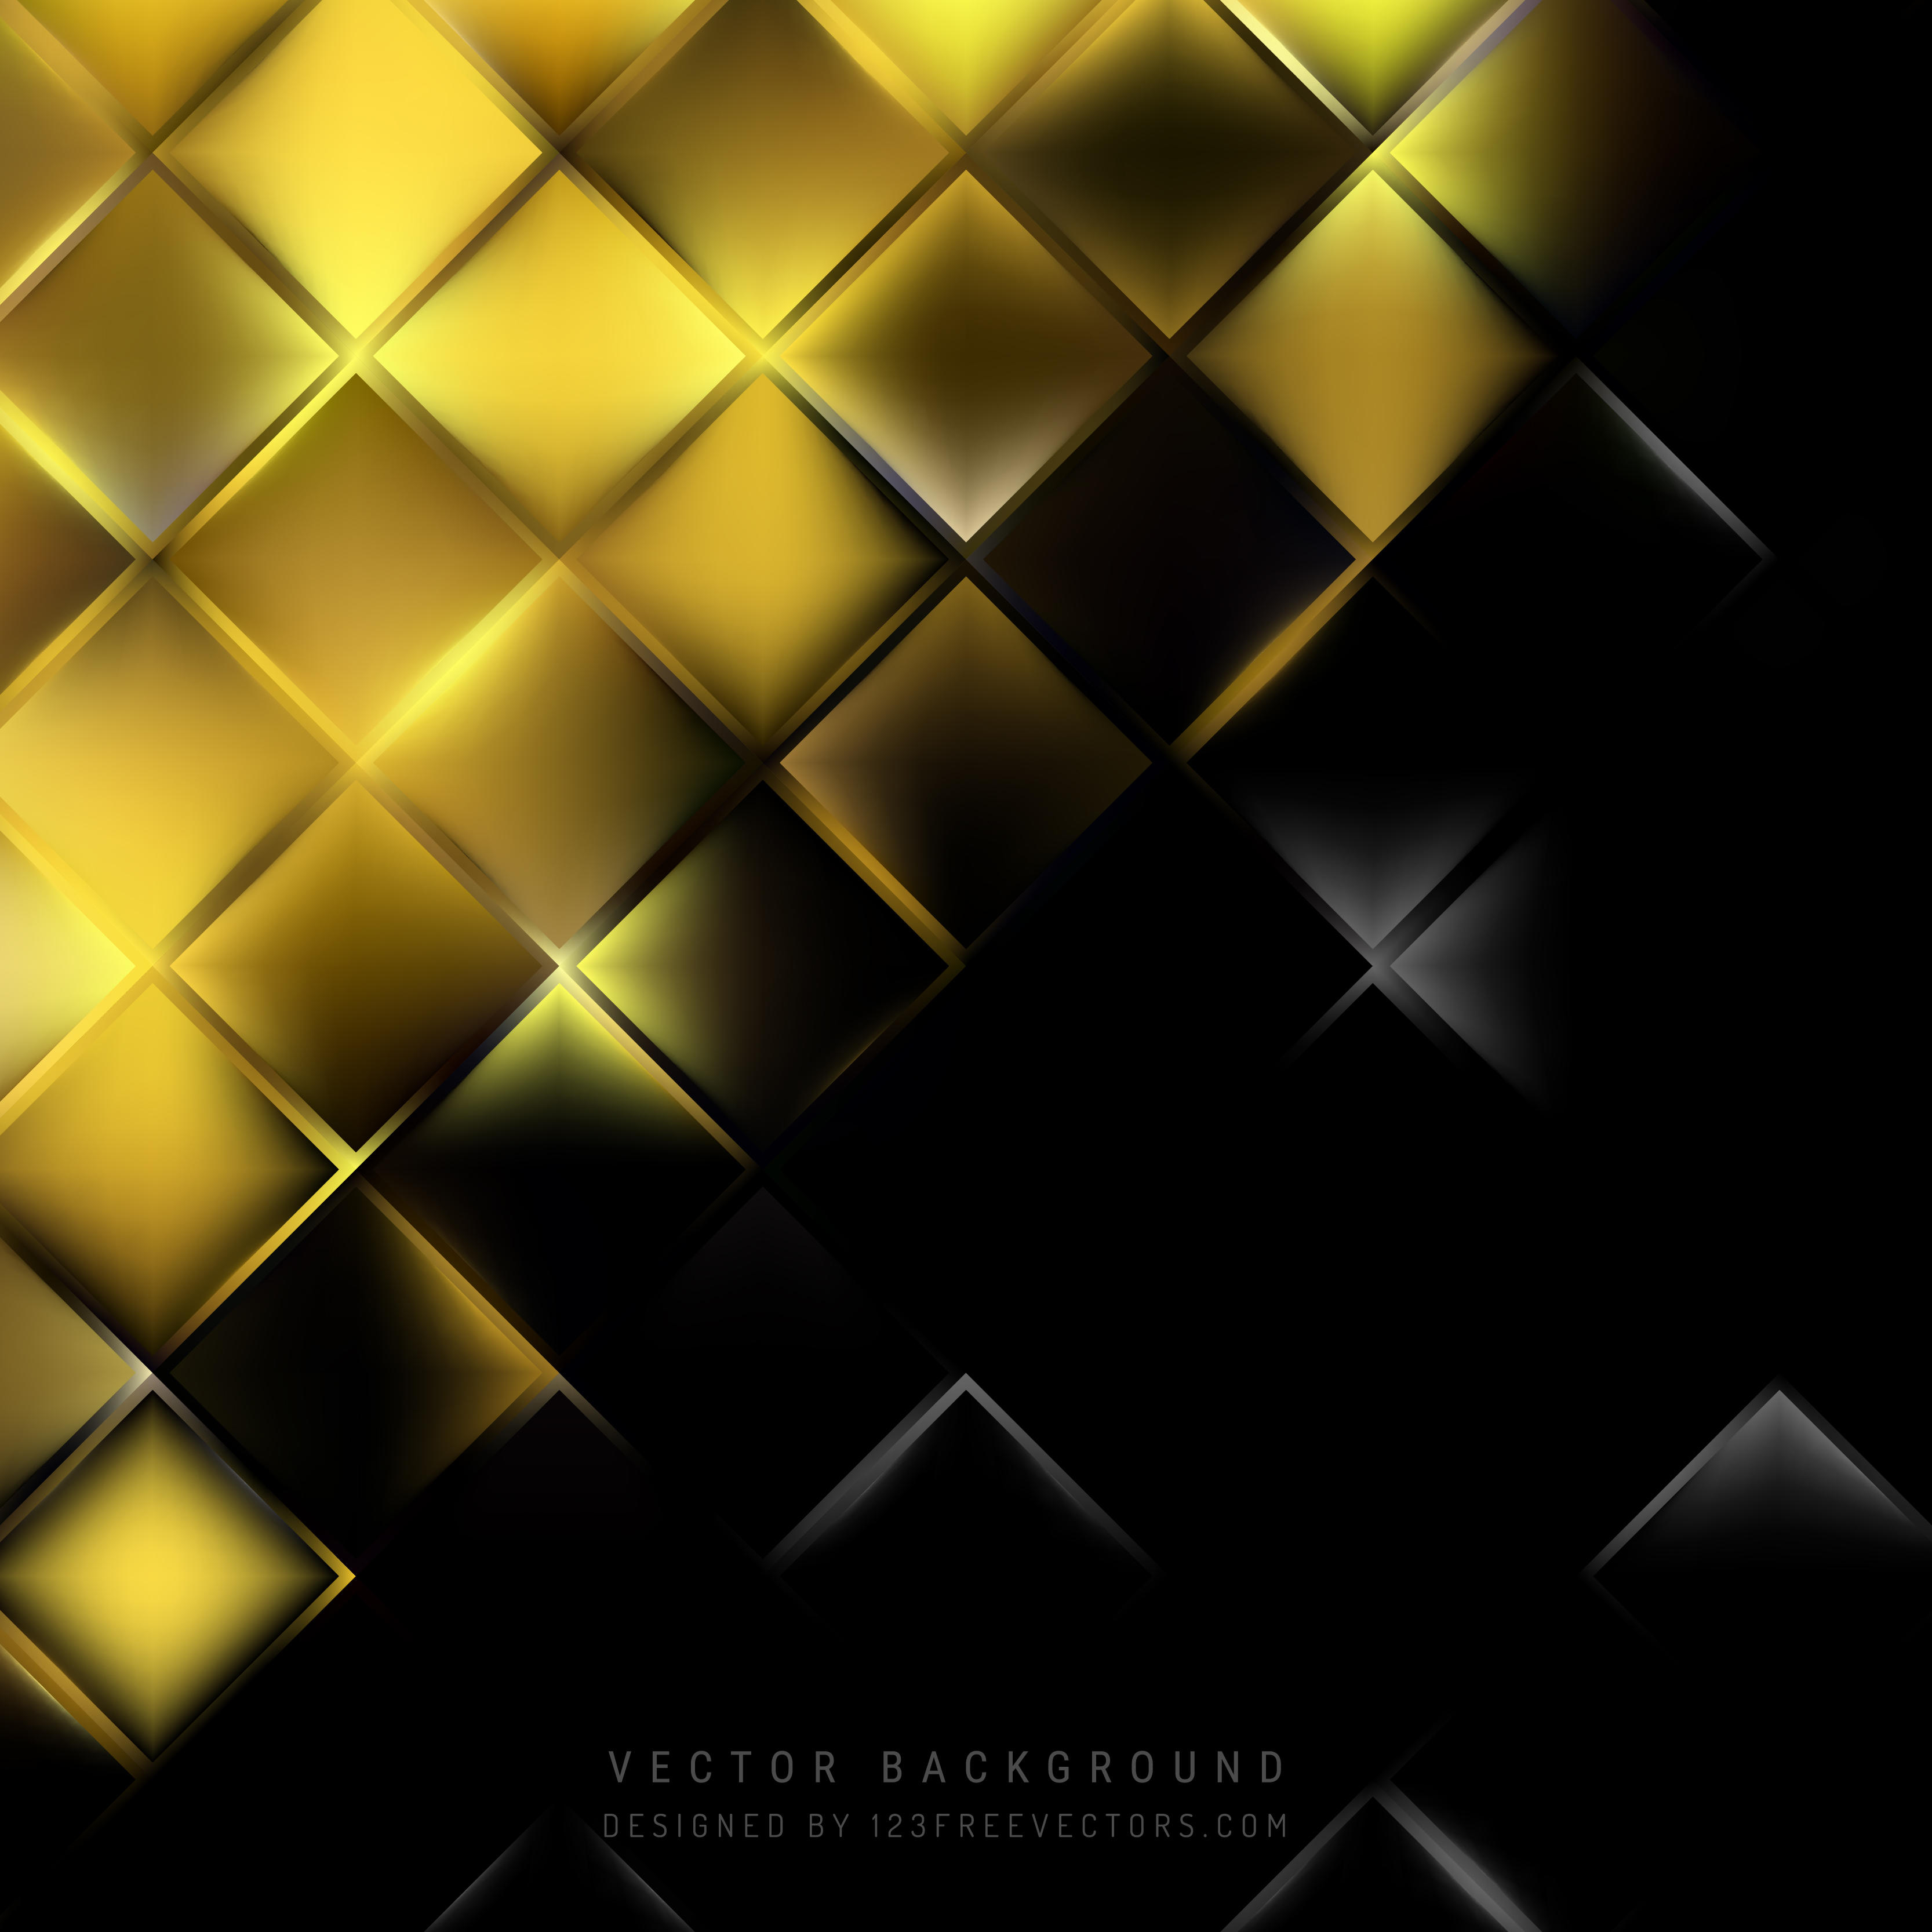 Abstract Black Gold Square Background Design